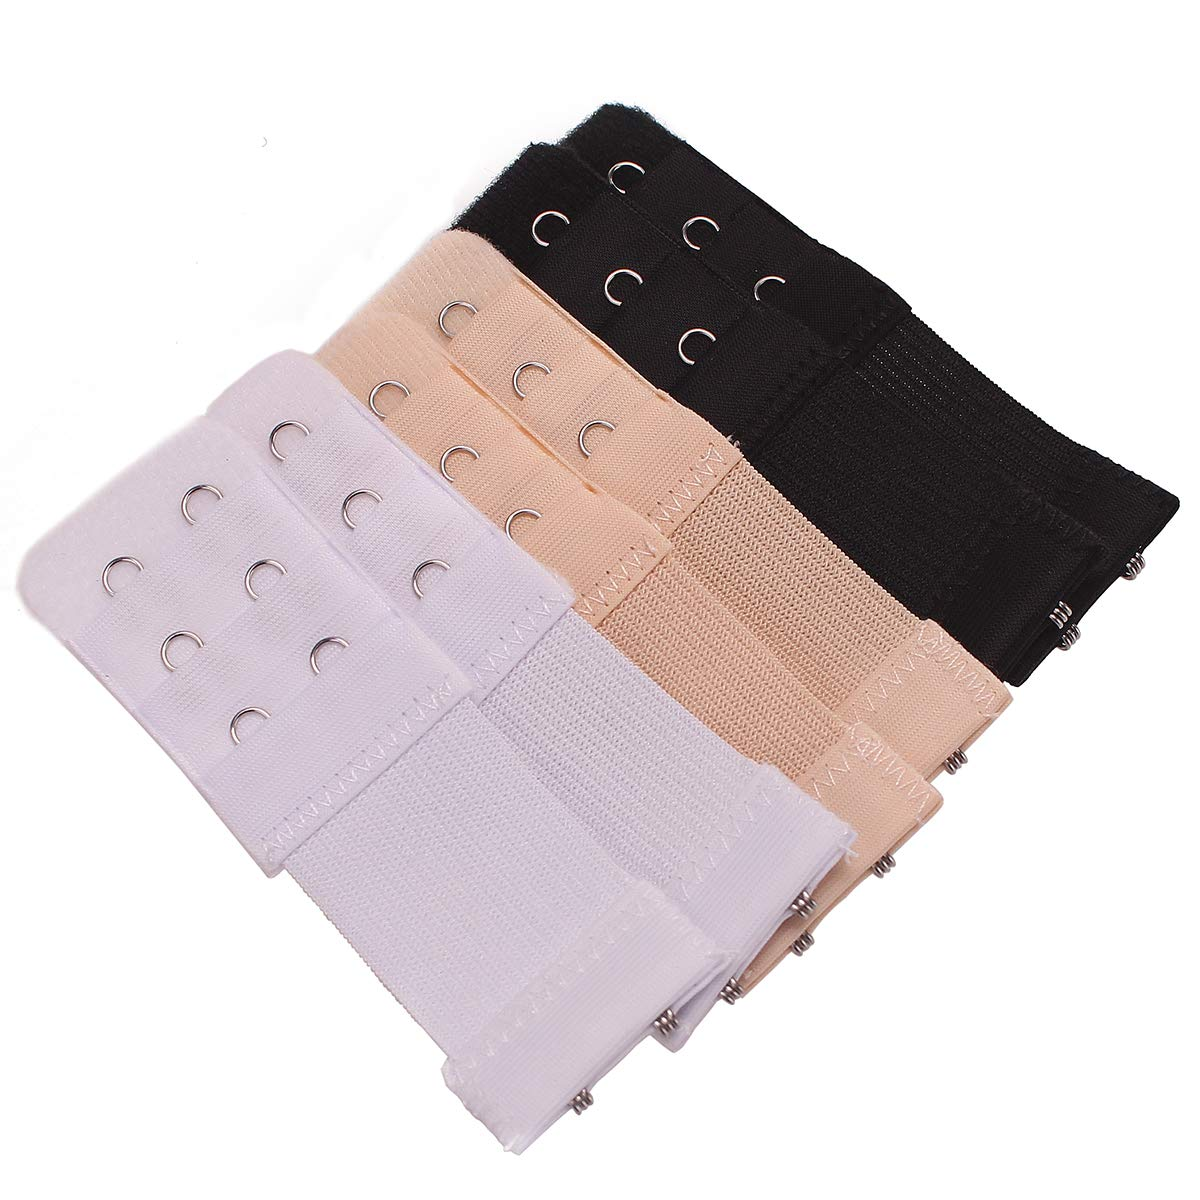 AKRover 6 Pieces Womens Soft Comfortable Elastic Bra Extenders Bra Extension Strap 2 Hook 3 Row Lady/'s Bra Extender Bra Band Skin Color